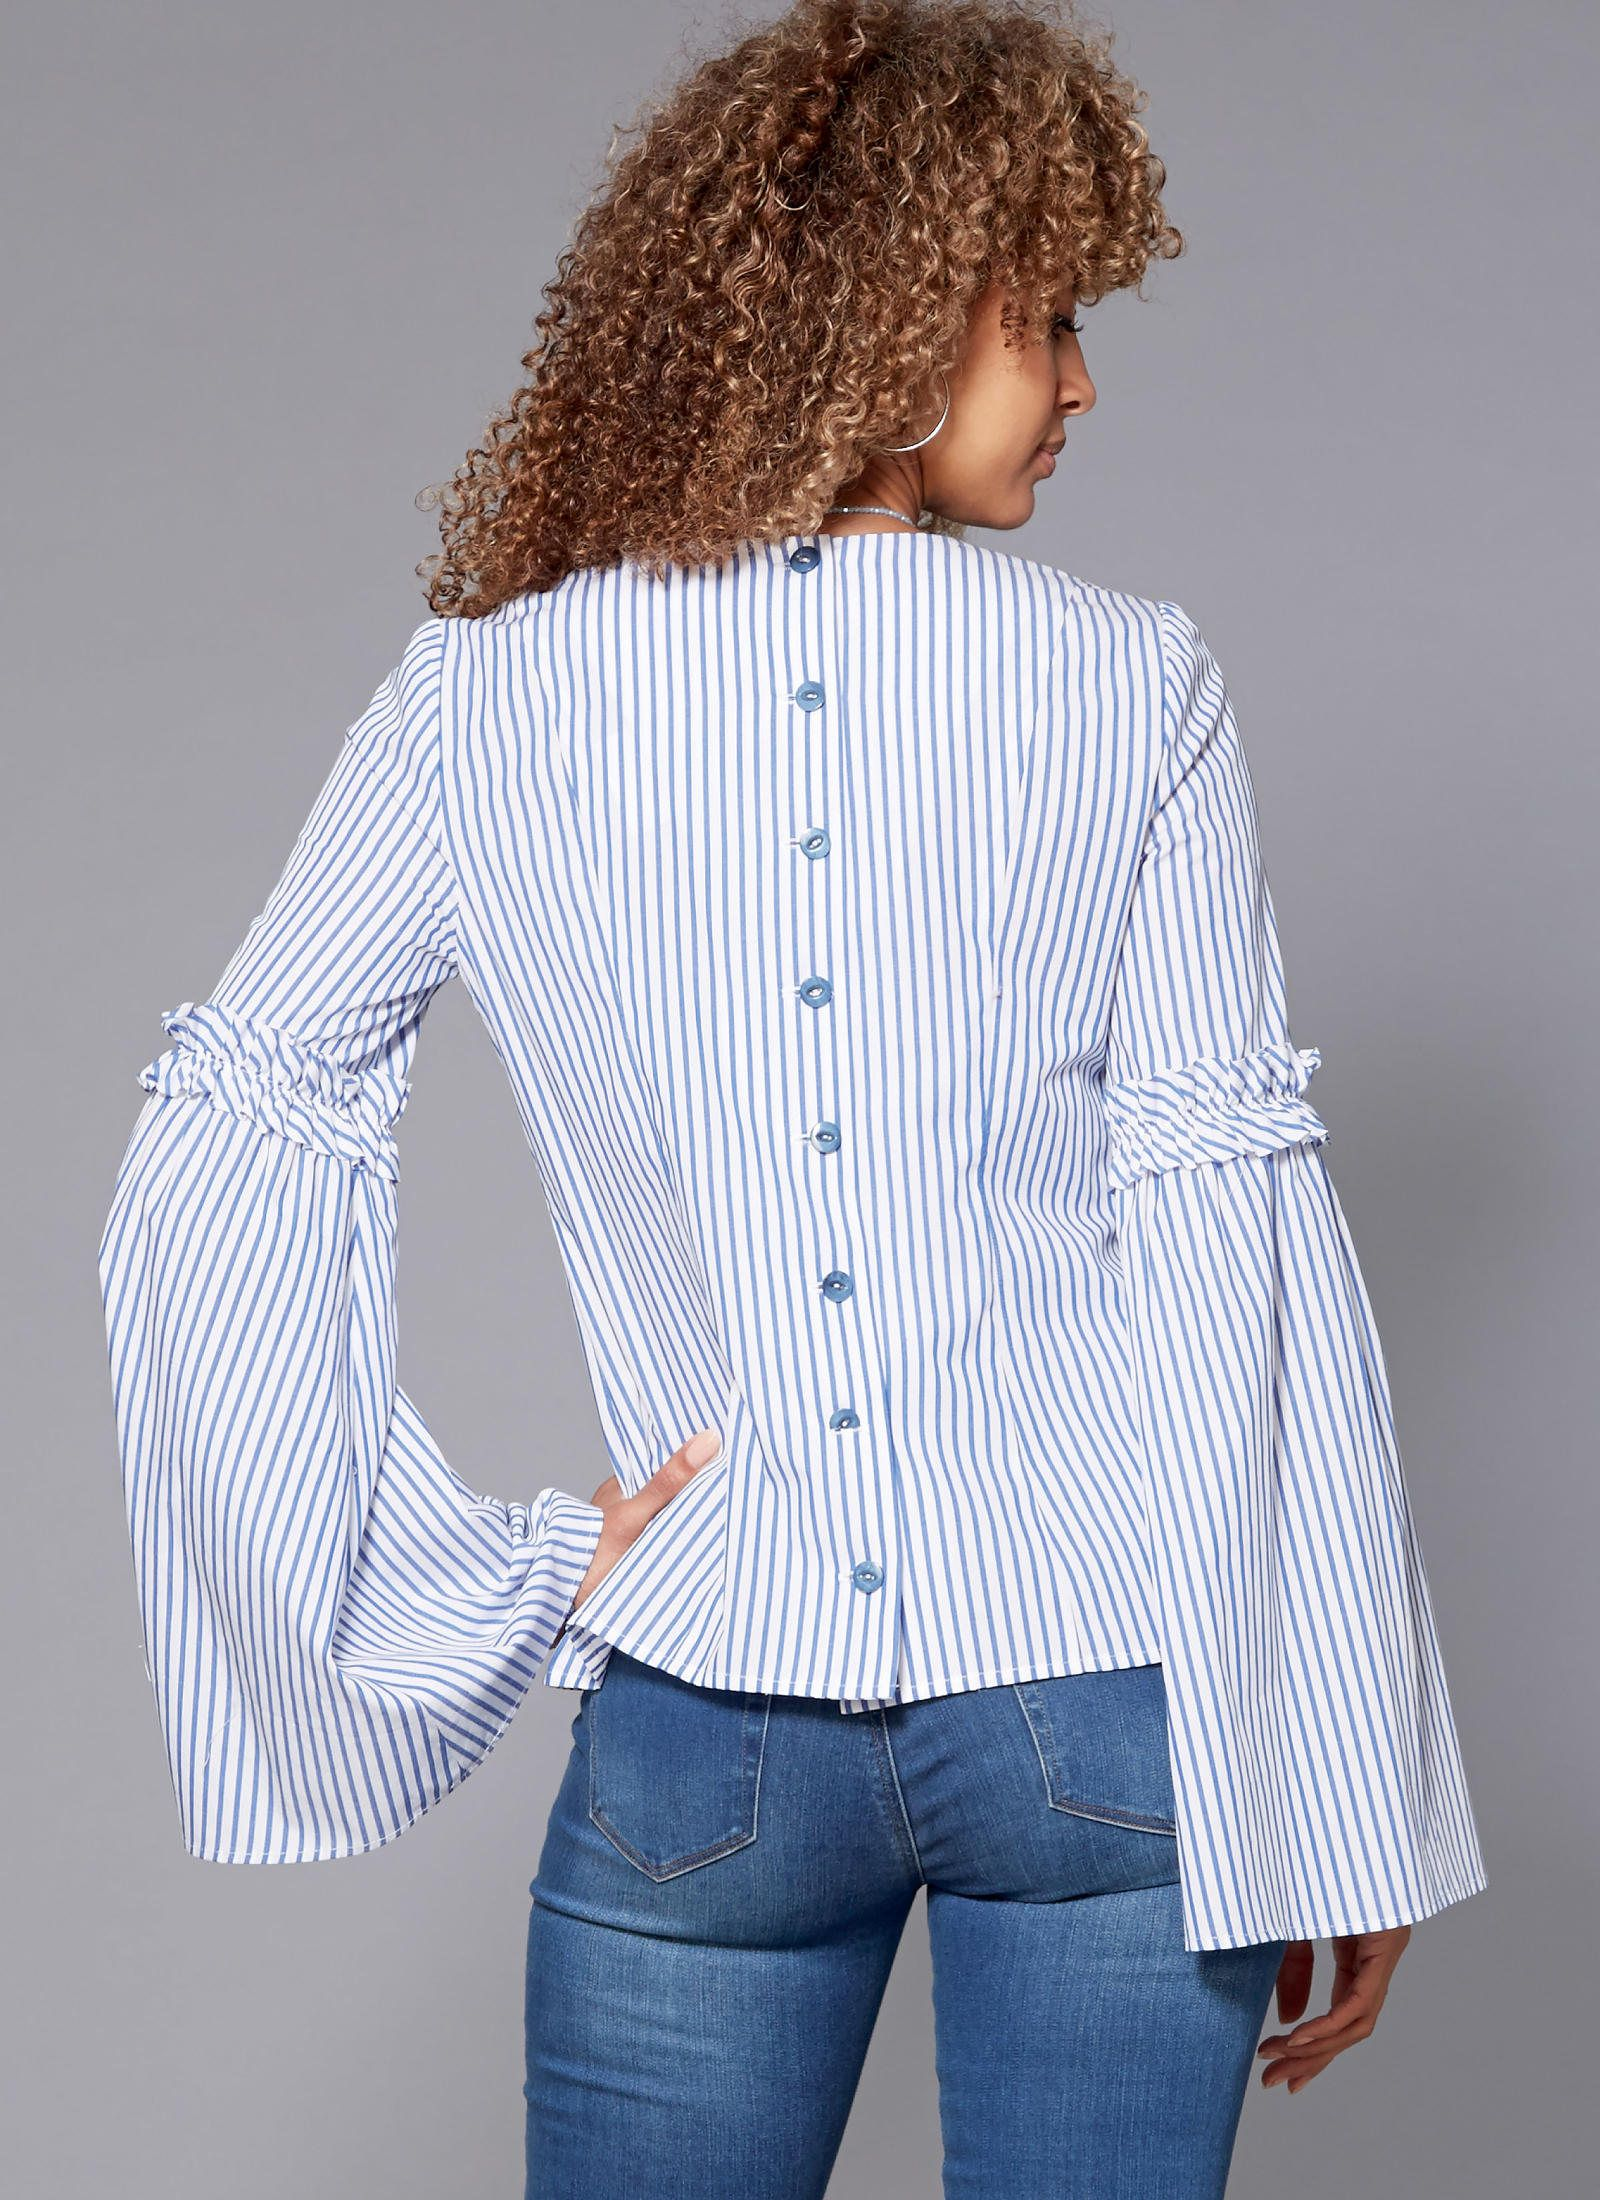 Mccall S Sewing Pattern M7687 Misses Back Button Tops With Sleeve